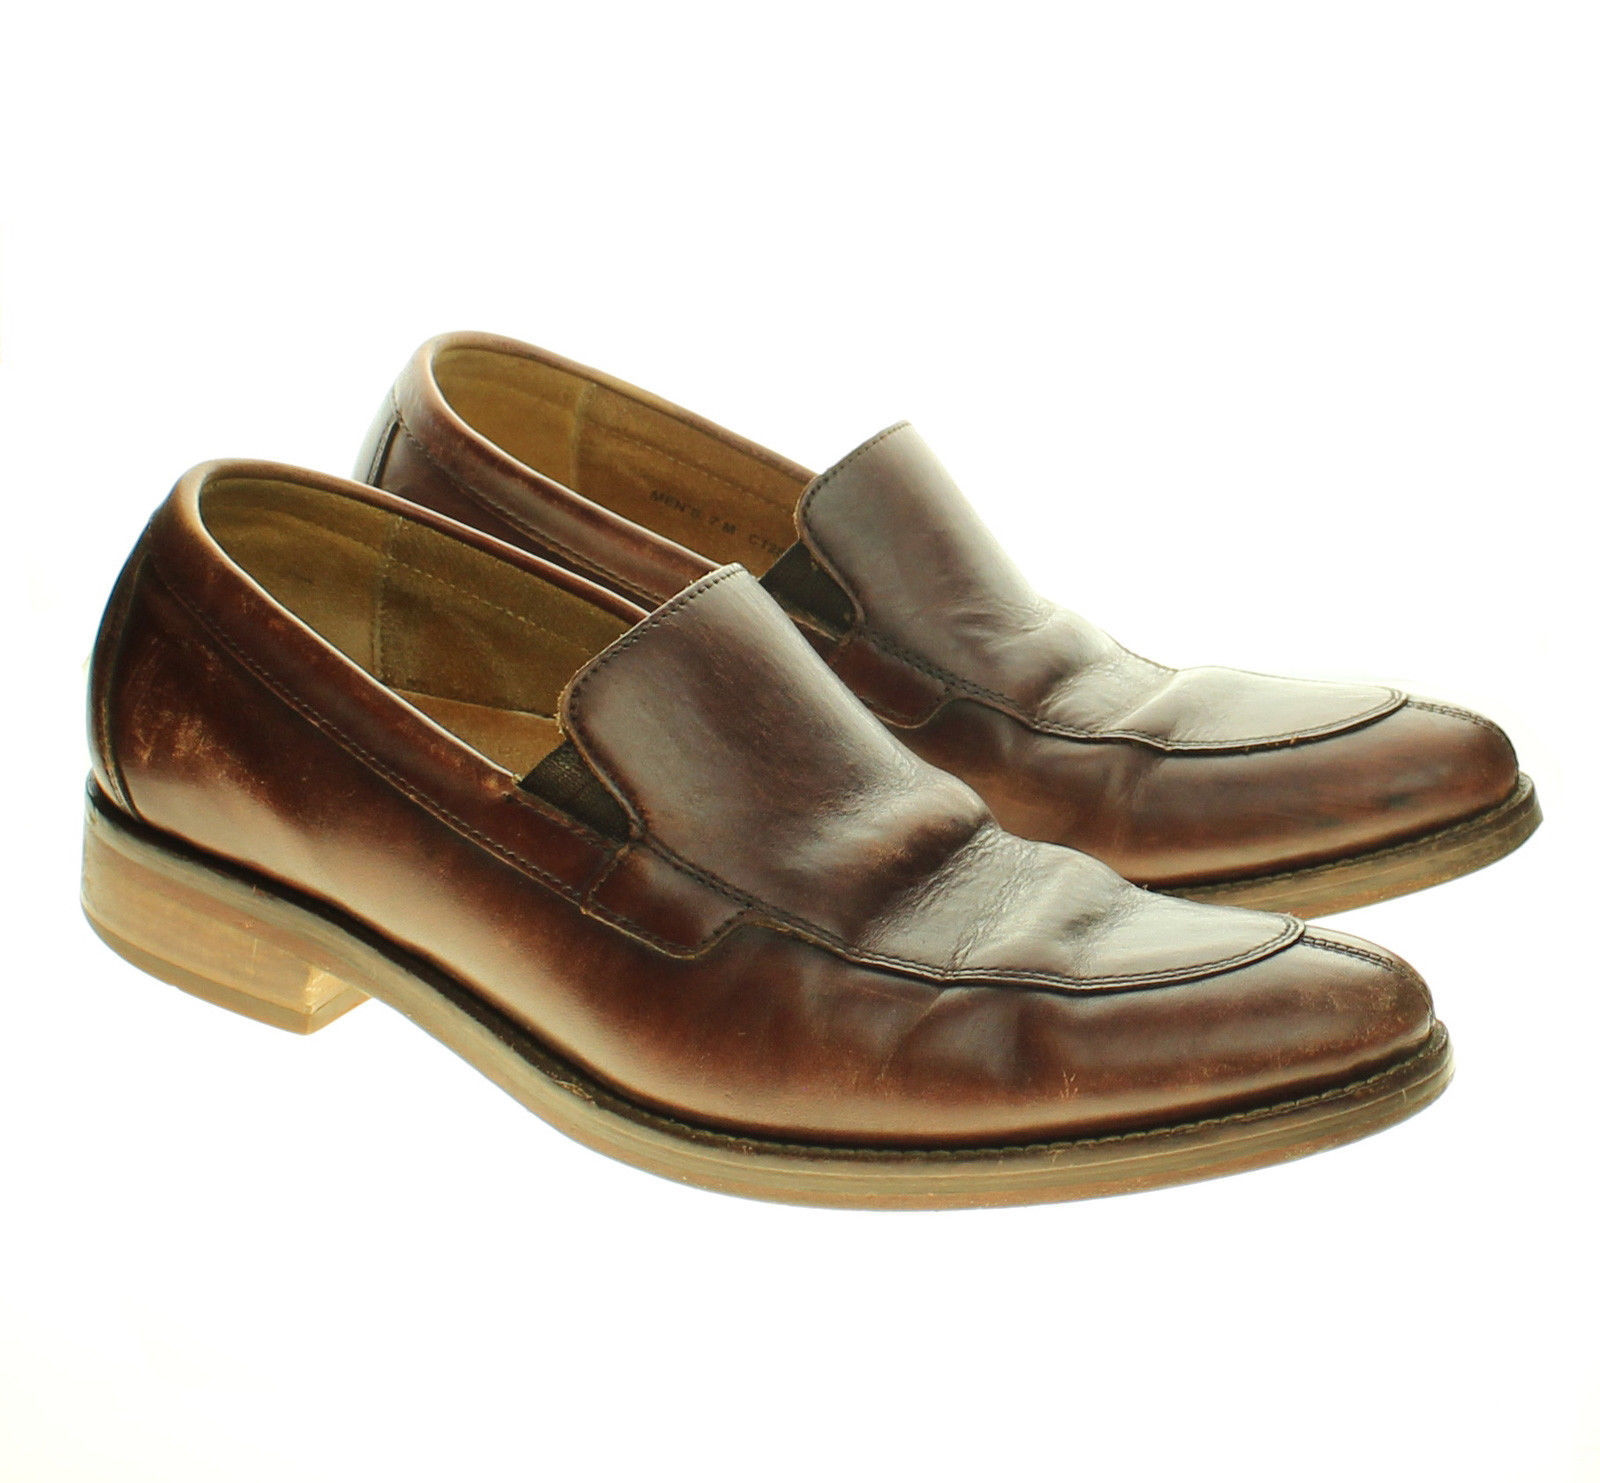 a9e15a1aa77 Cole Haan Grand Os C12854 Madison Split and 49 similar items. 57